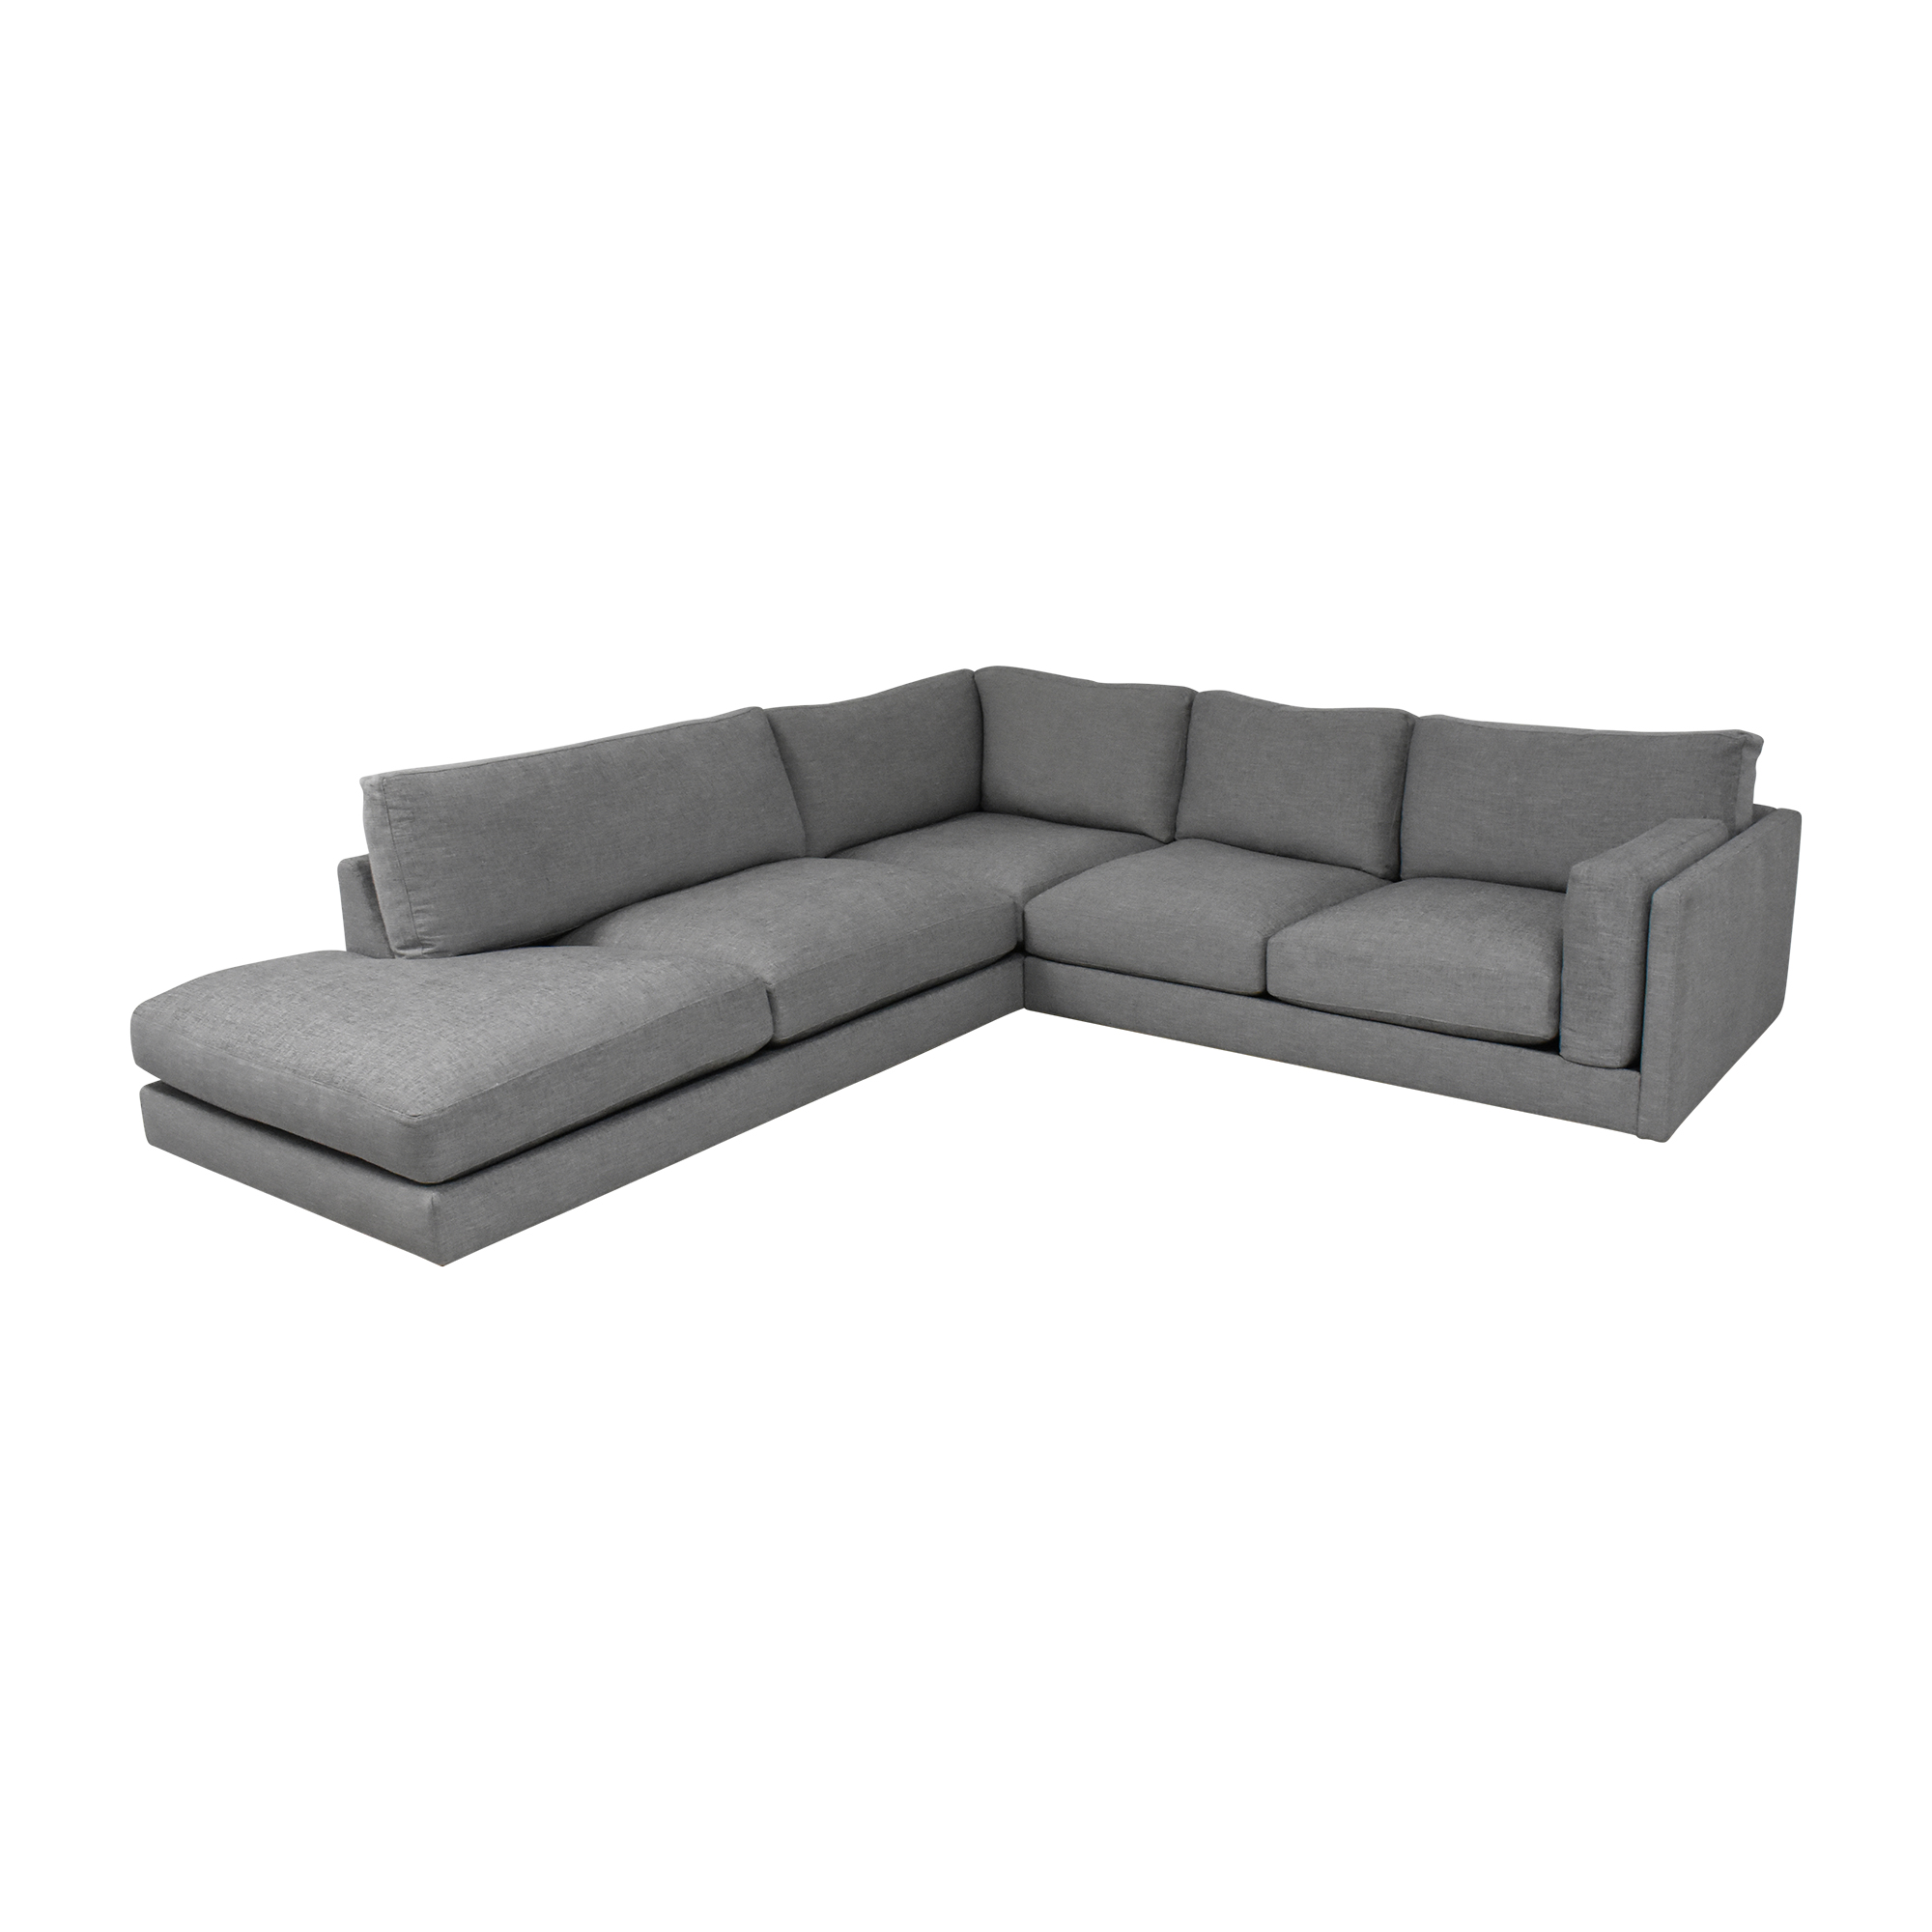 BenchMade Modern BenchMade Modern Skinny Fat Sectional With Bumper grey